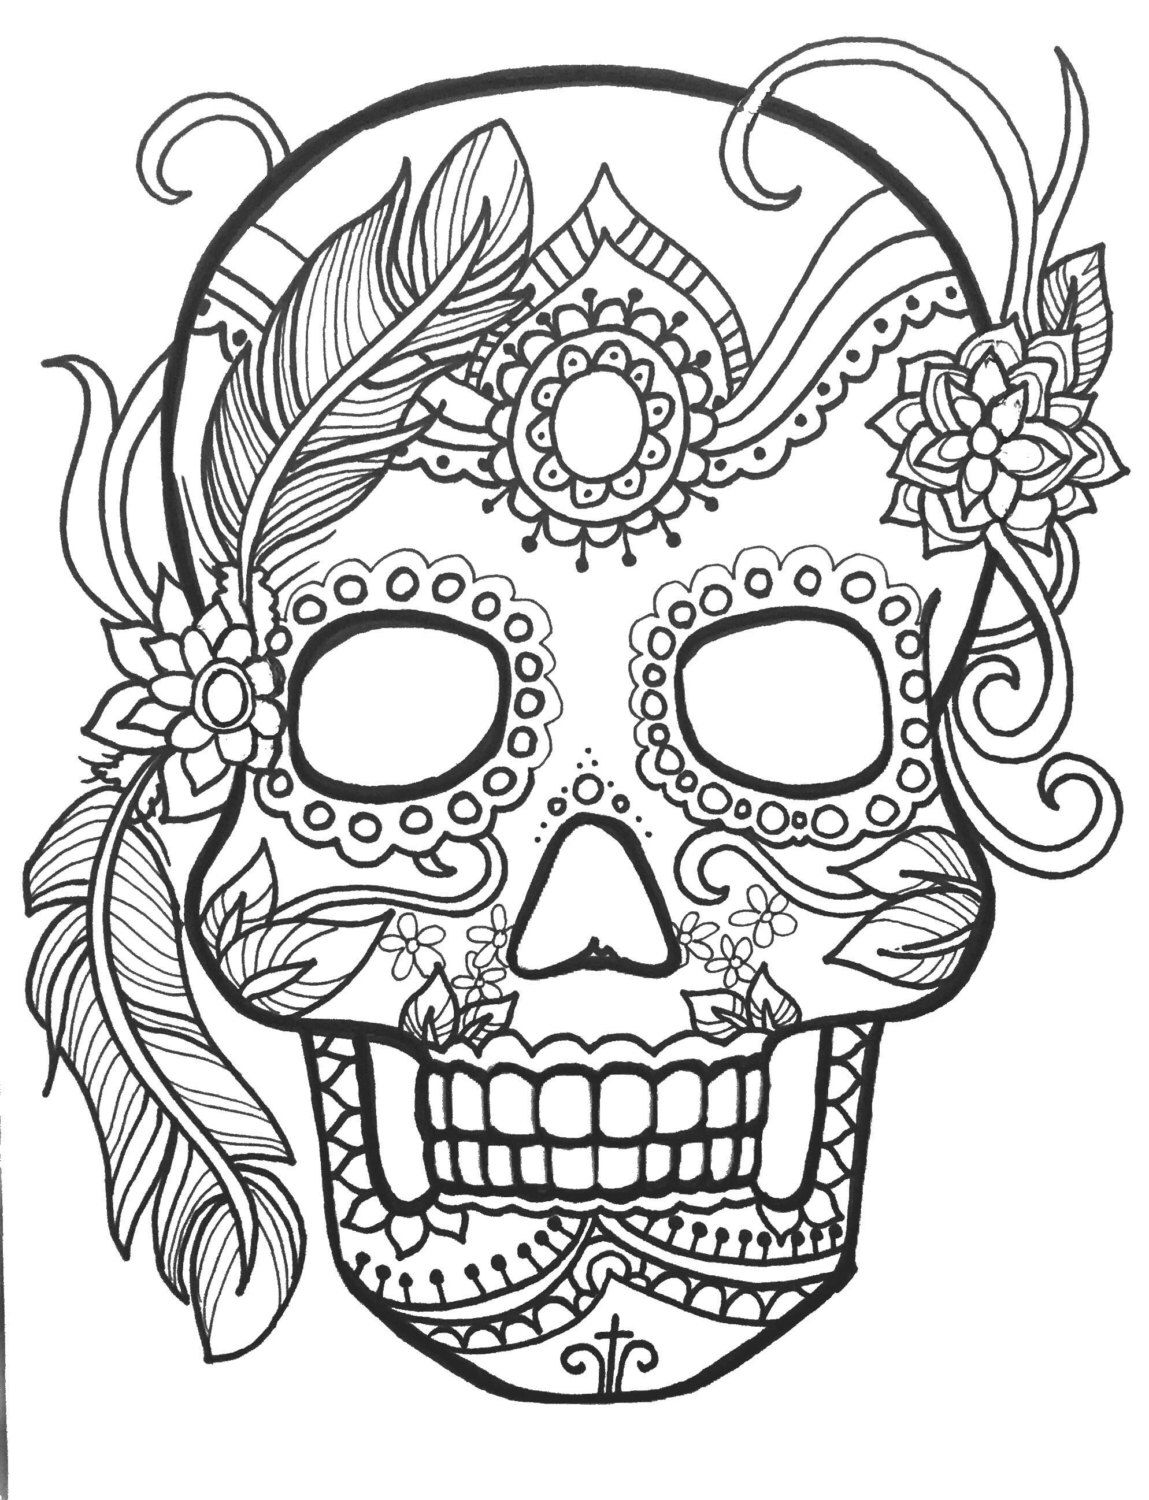 day of the dead skulls coloring pages 10 sugar skull day of the dead coloringpages original art the coloring dead day of pages skulls